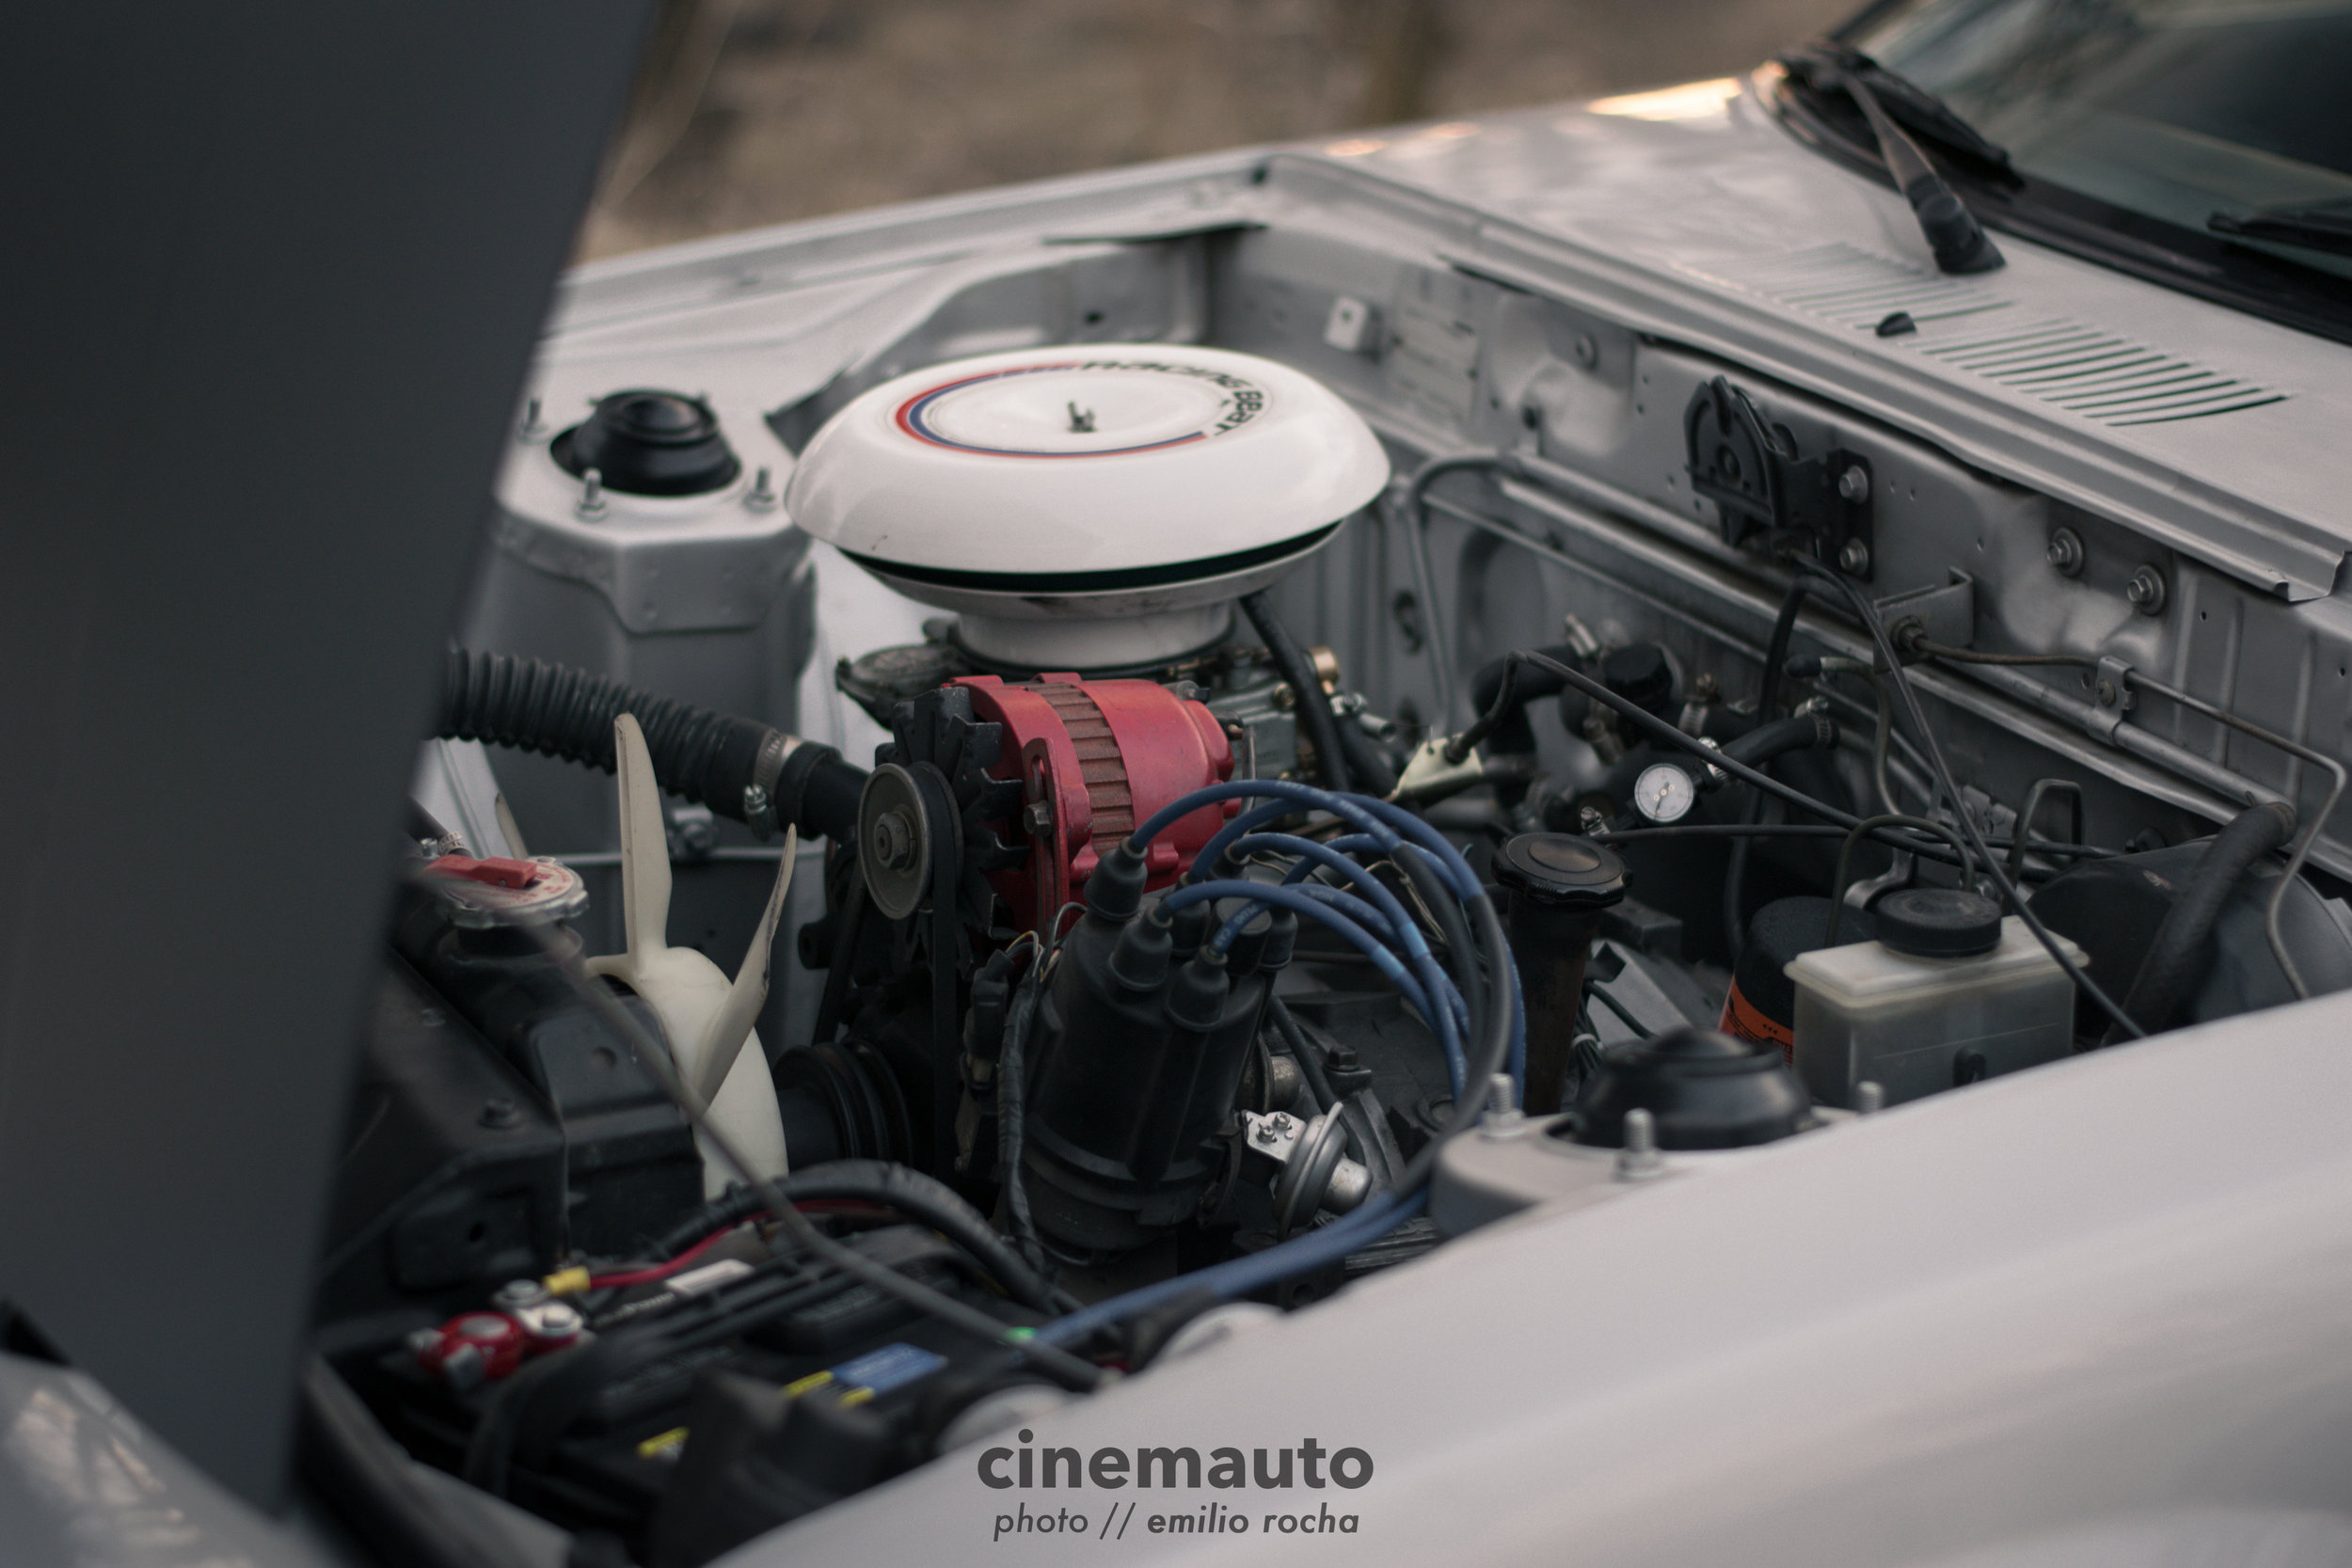 Cinemauto-RX7-30-2.jpg